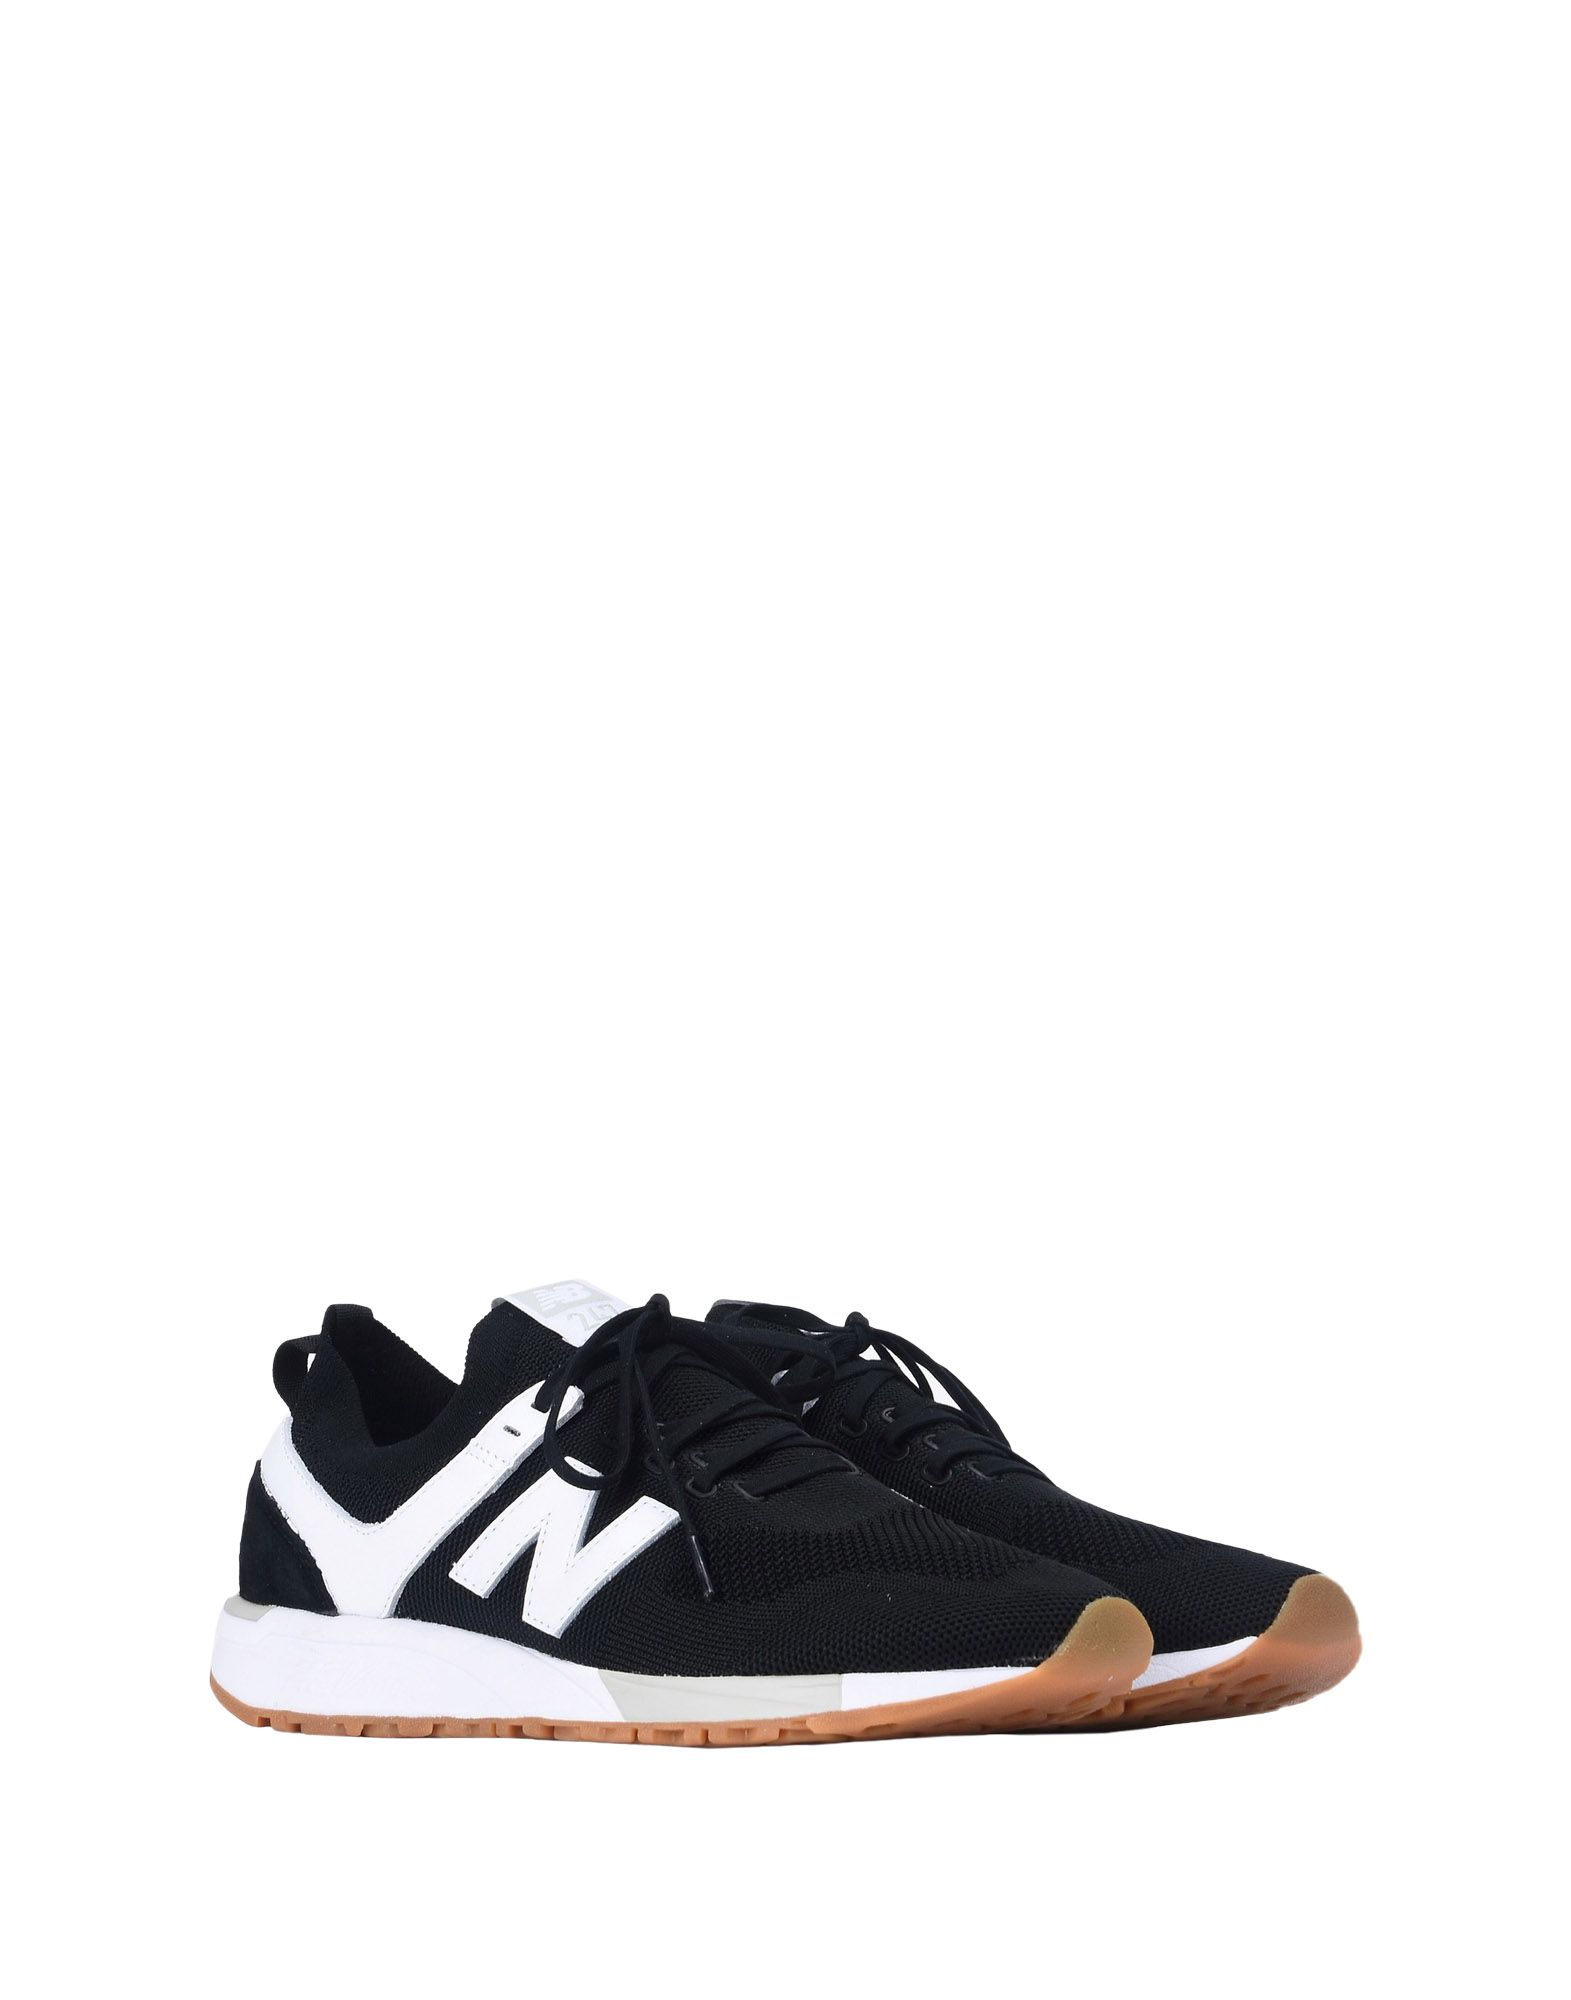 New Balance 247 Deconstructed Knit Knit Knit  11489458FC Neue Schuhe eda264